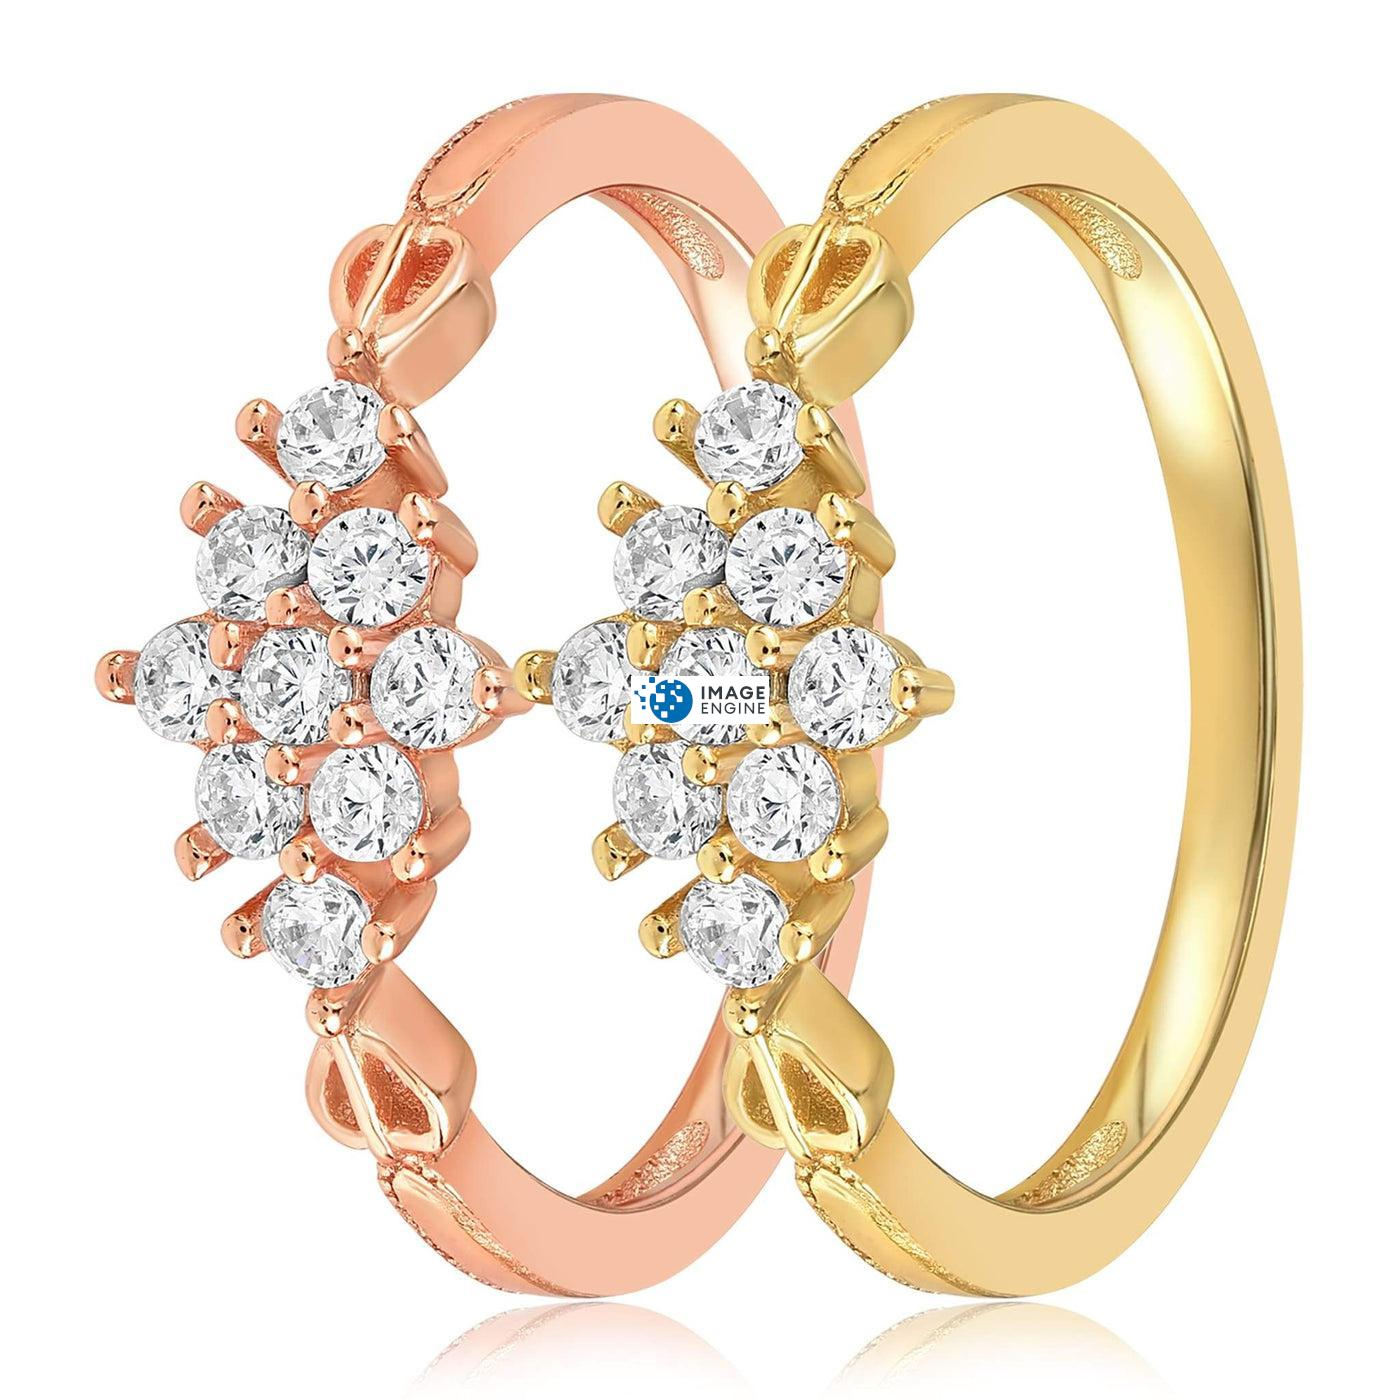 Sarah Snowflake Dainty Ring - Side by Side - 18K Yellow Gold Vermeil and 18K Rose Gold Vermeil